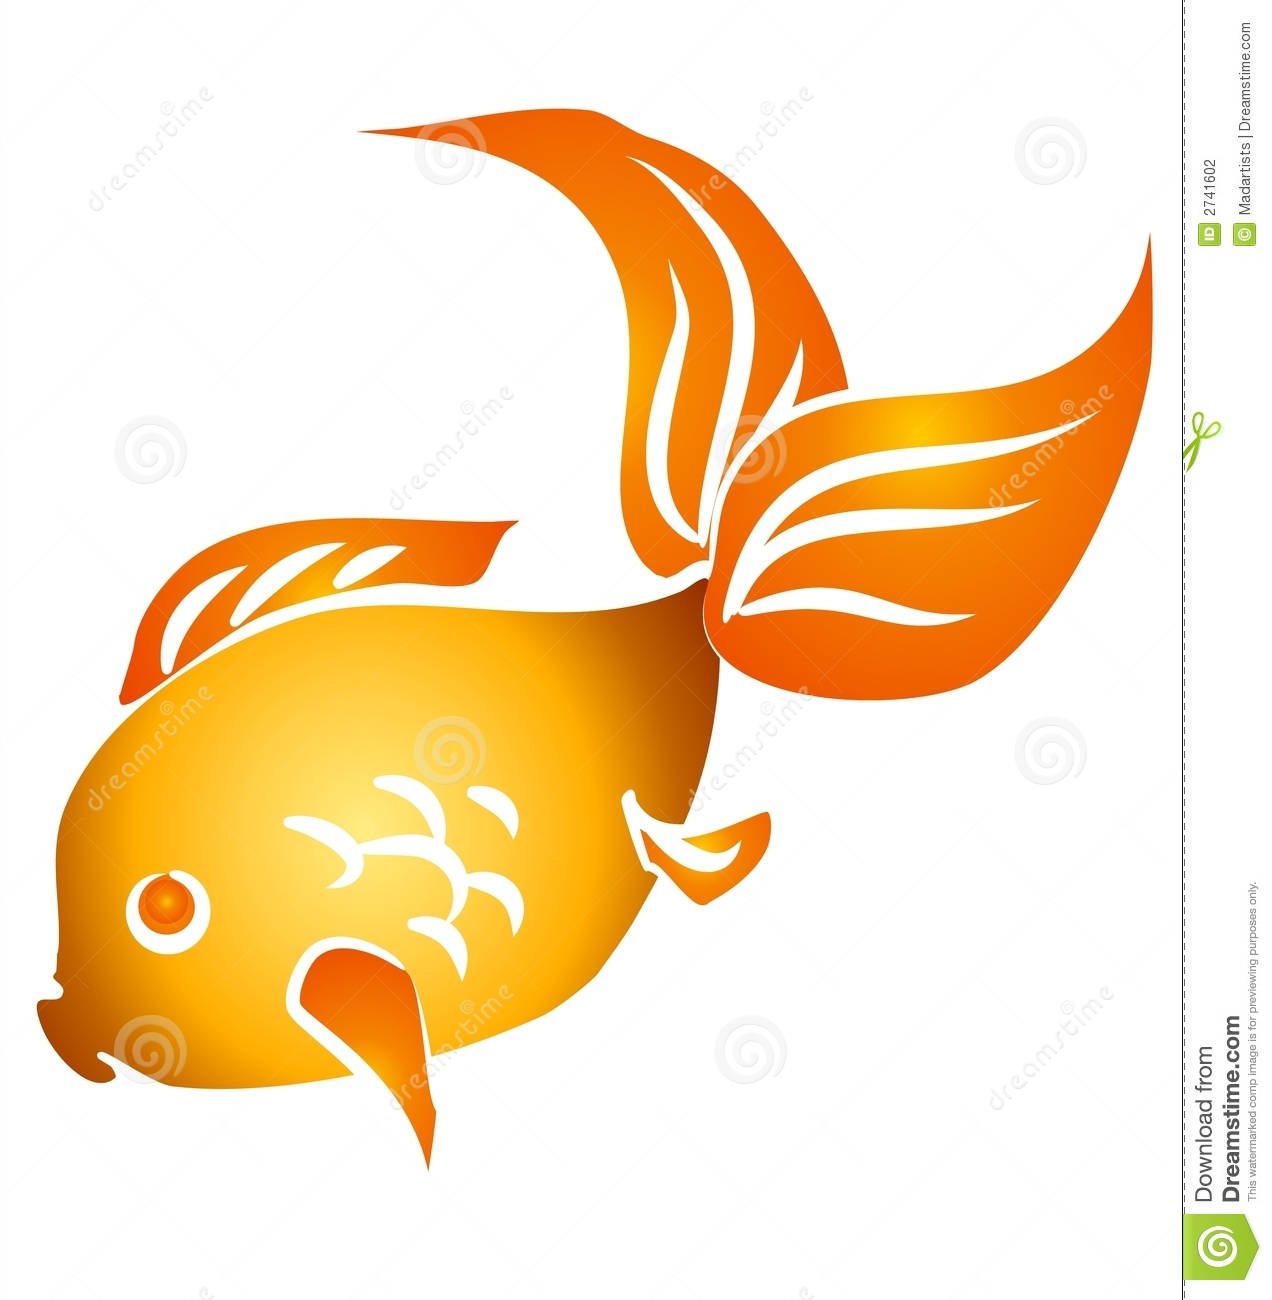 isolated goldfish clip art stock illustration illustration of rh dreamstime com goldfish clipart images clipart goldfish black and white